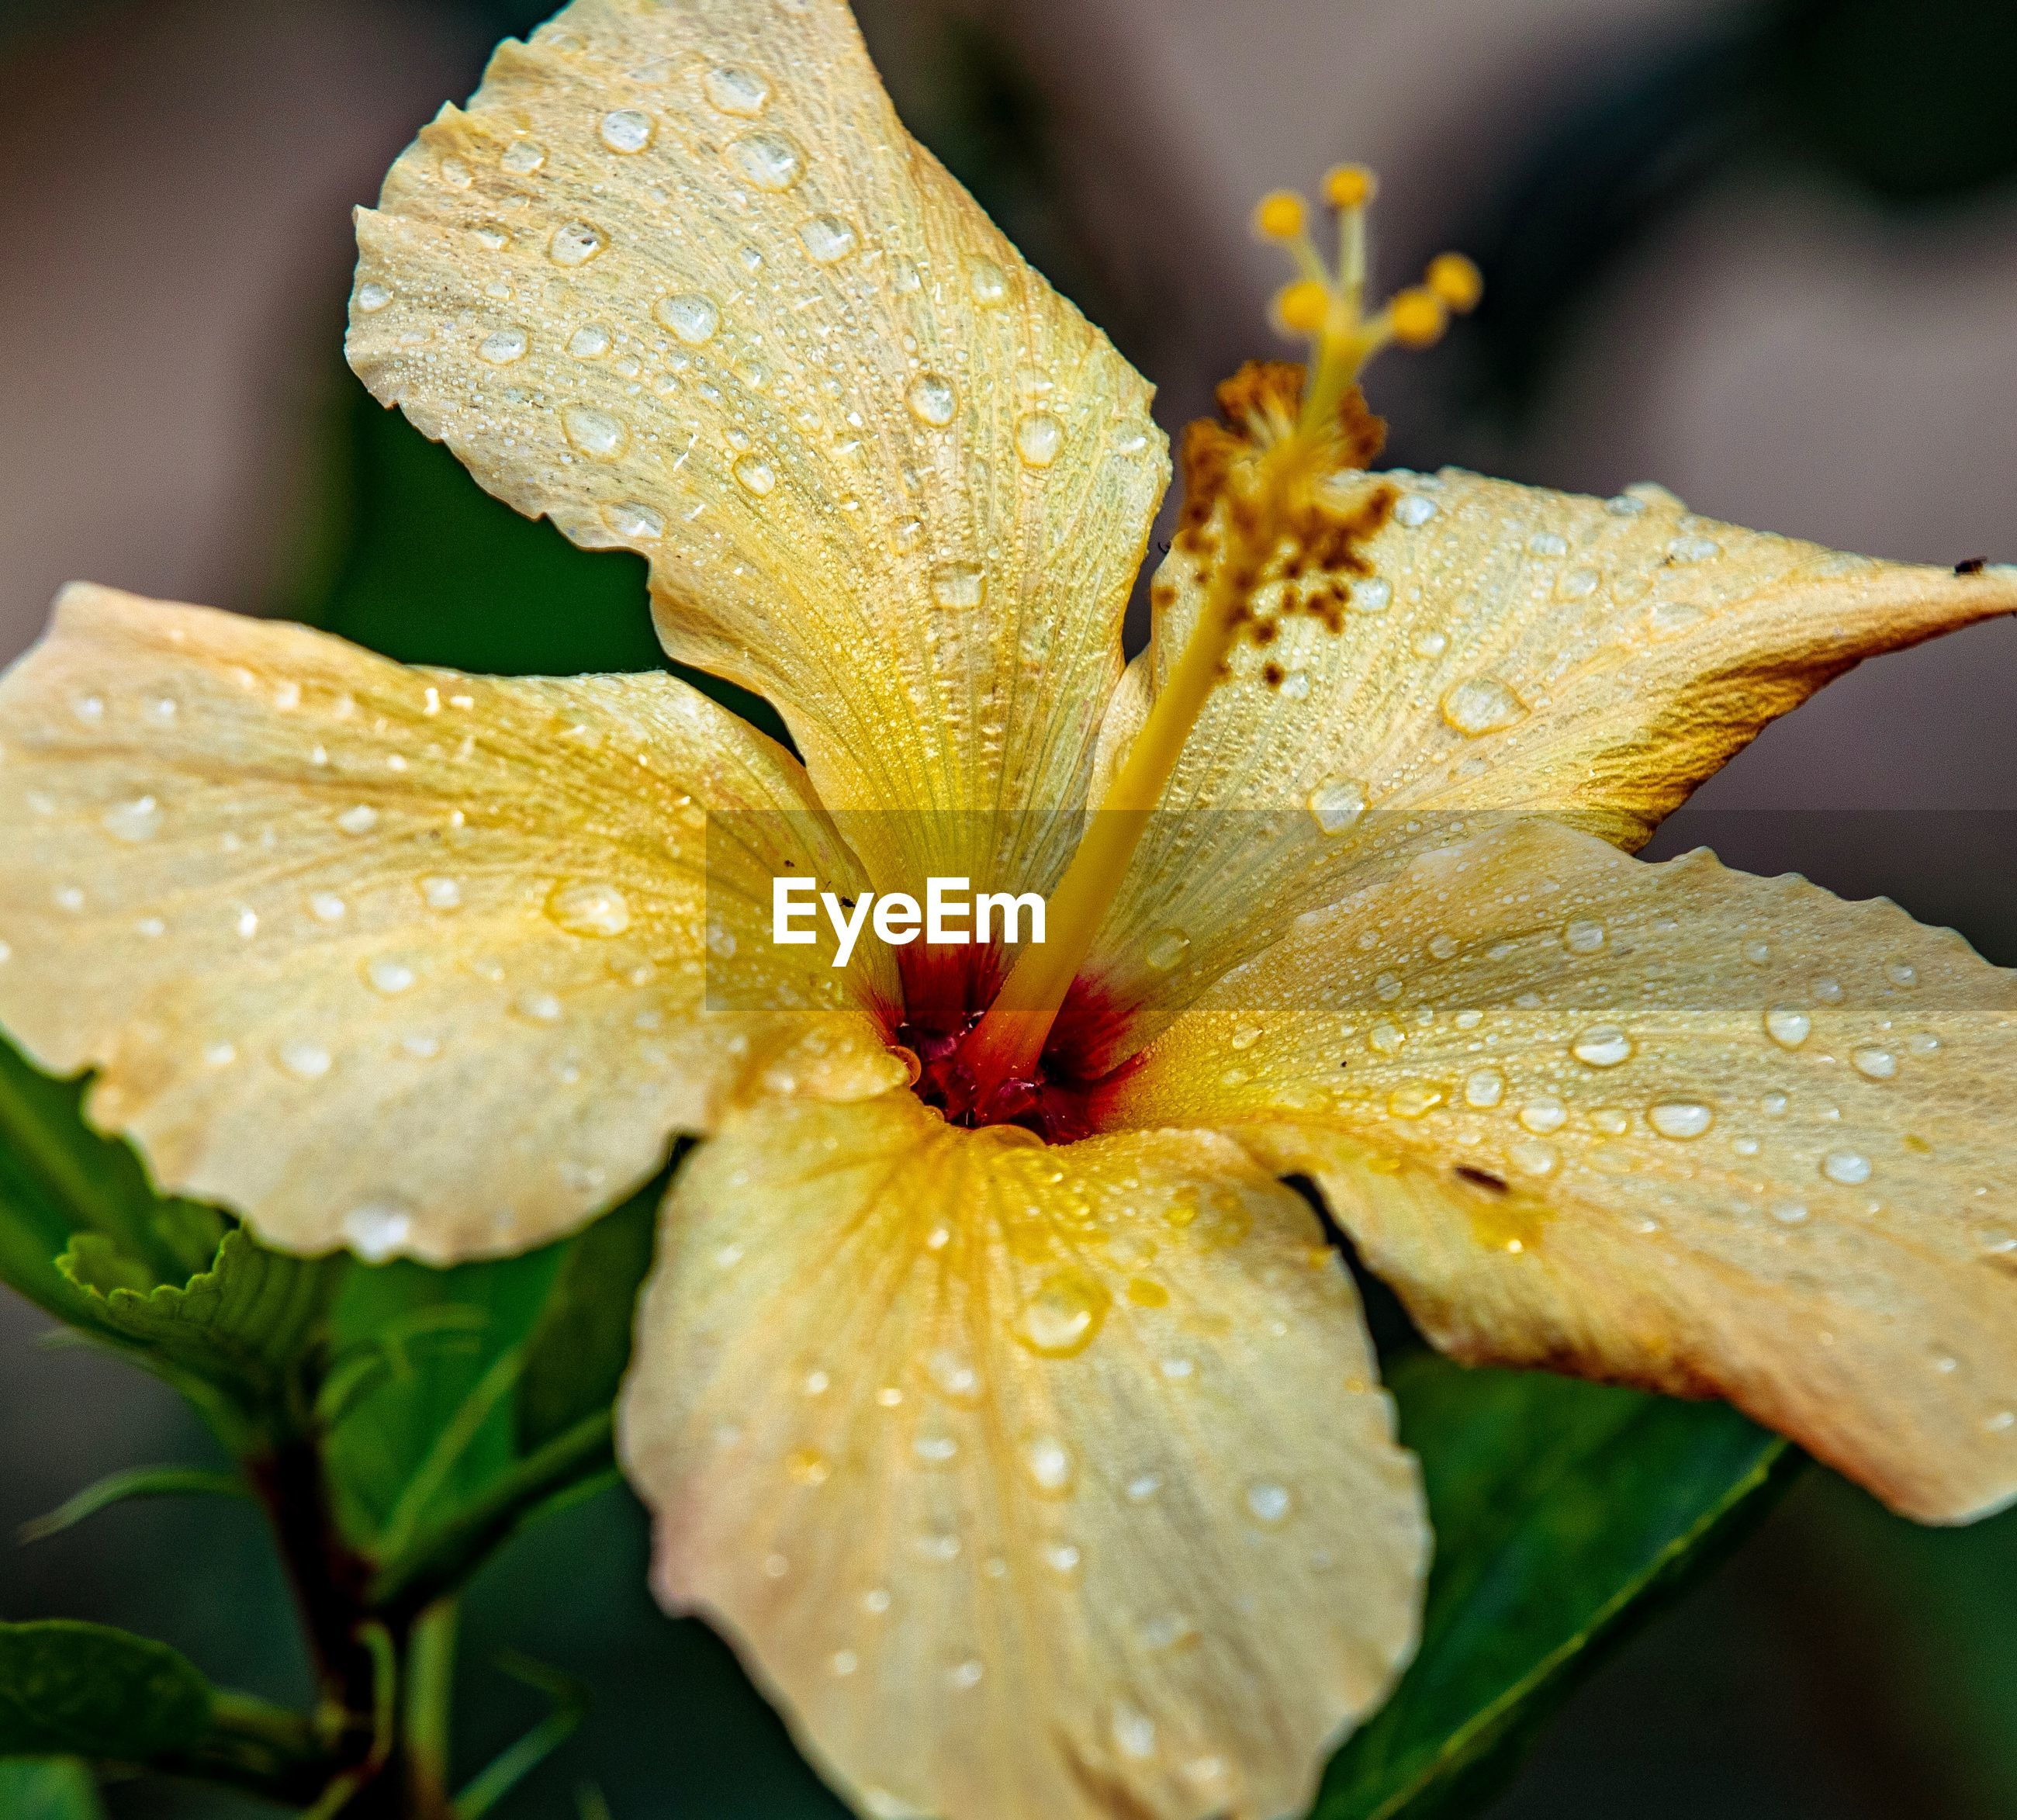 CLOSE-UP OF WATER DROPS ON YELLOW LILY